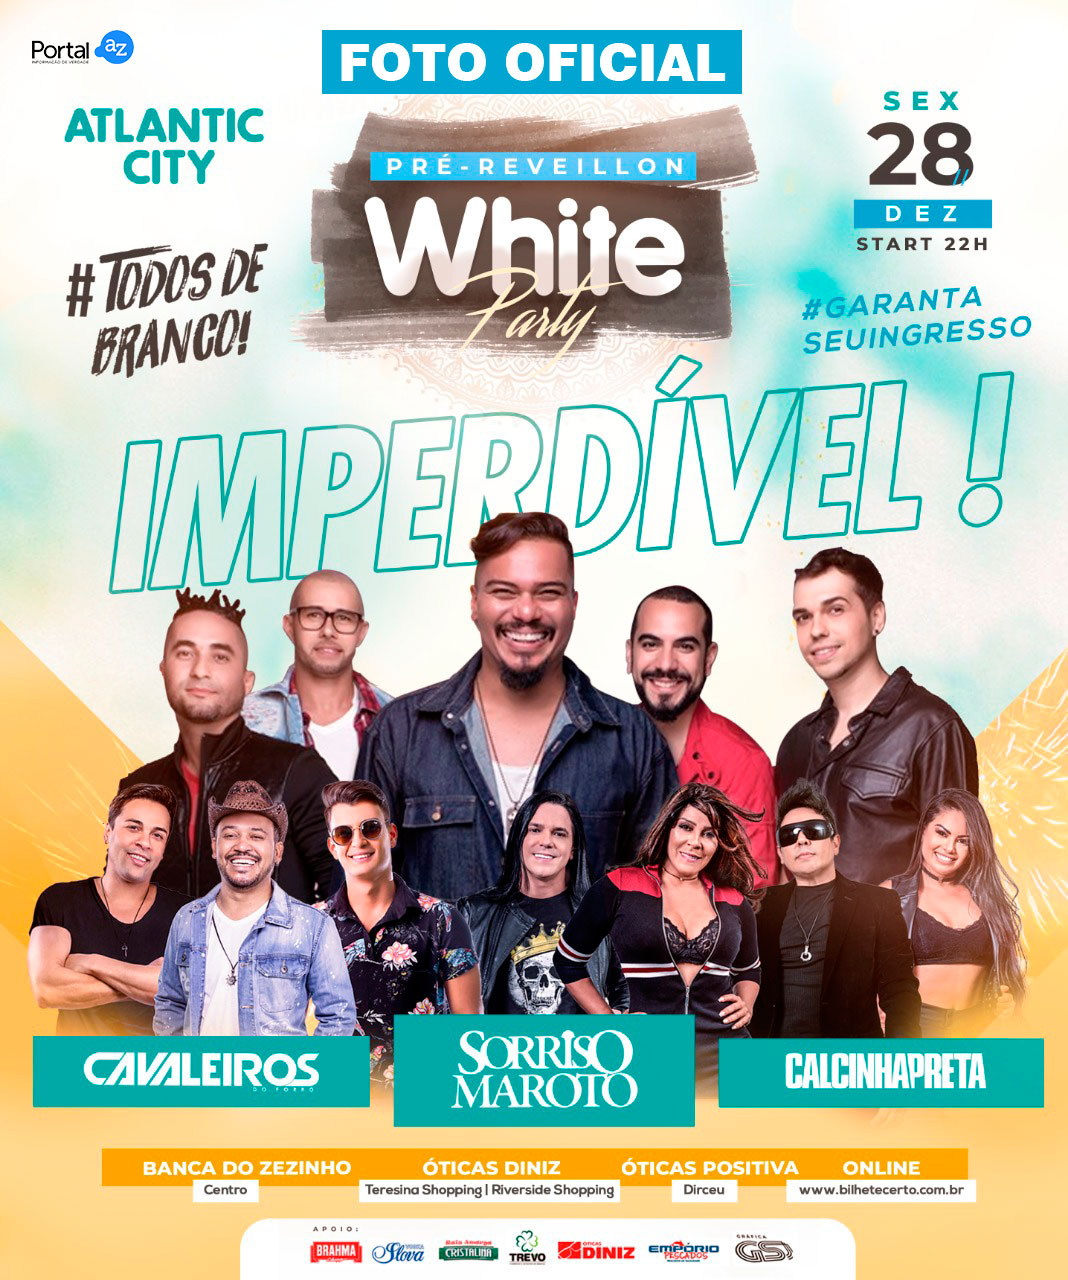 Portal AZ sorteia ingressos para o pré reveillon White Party